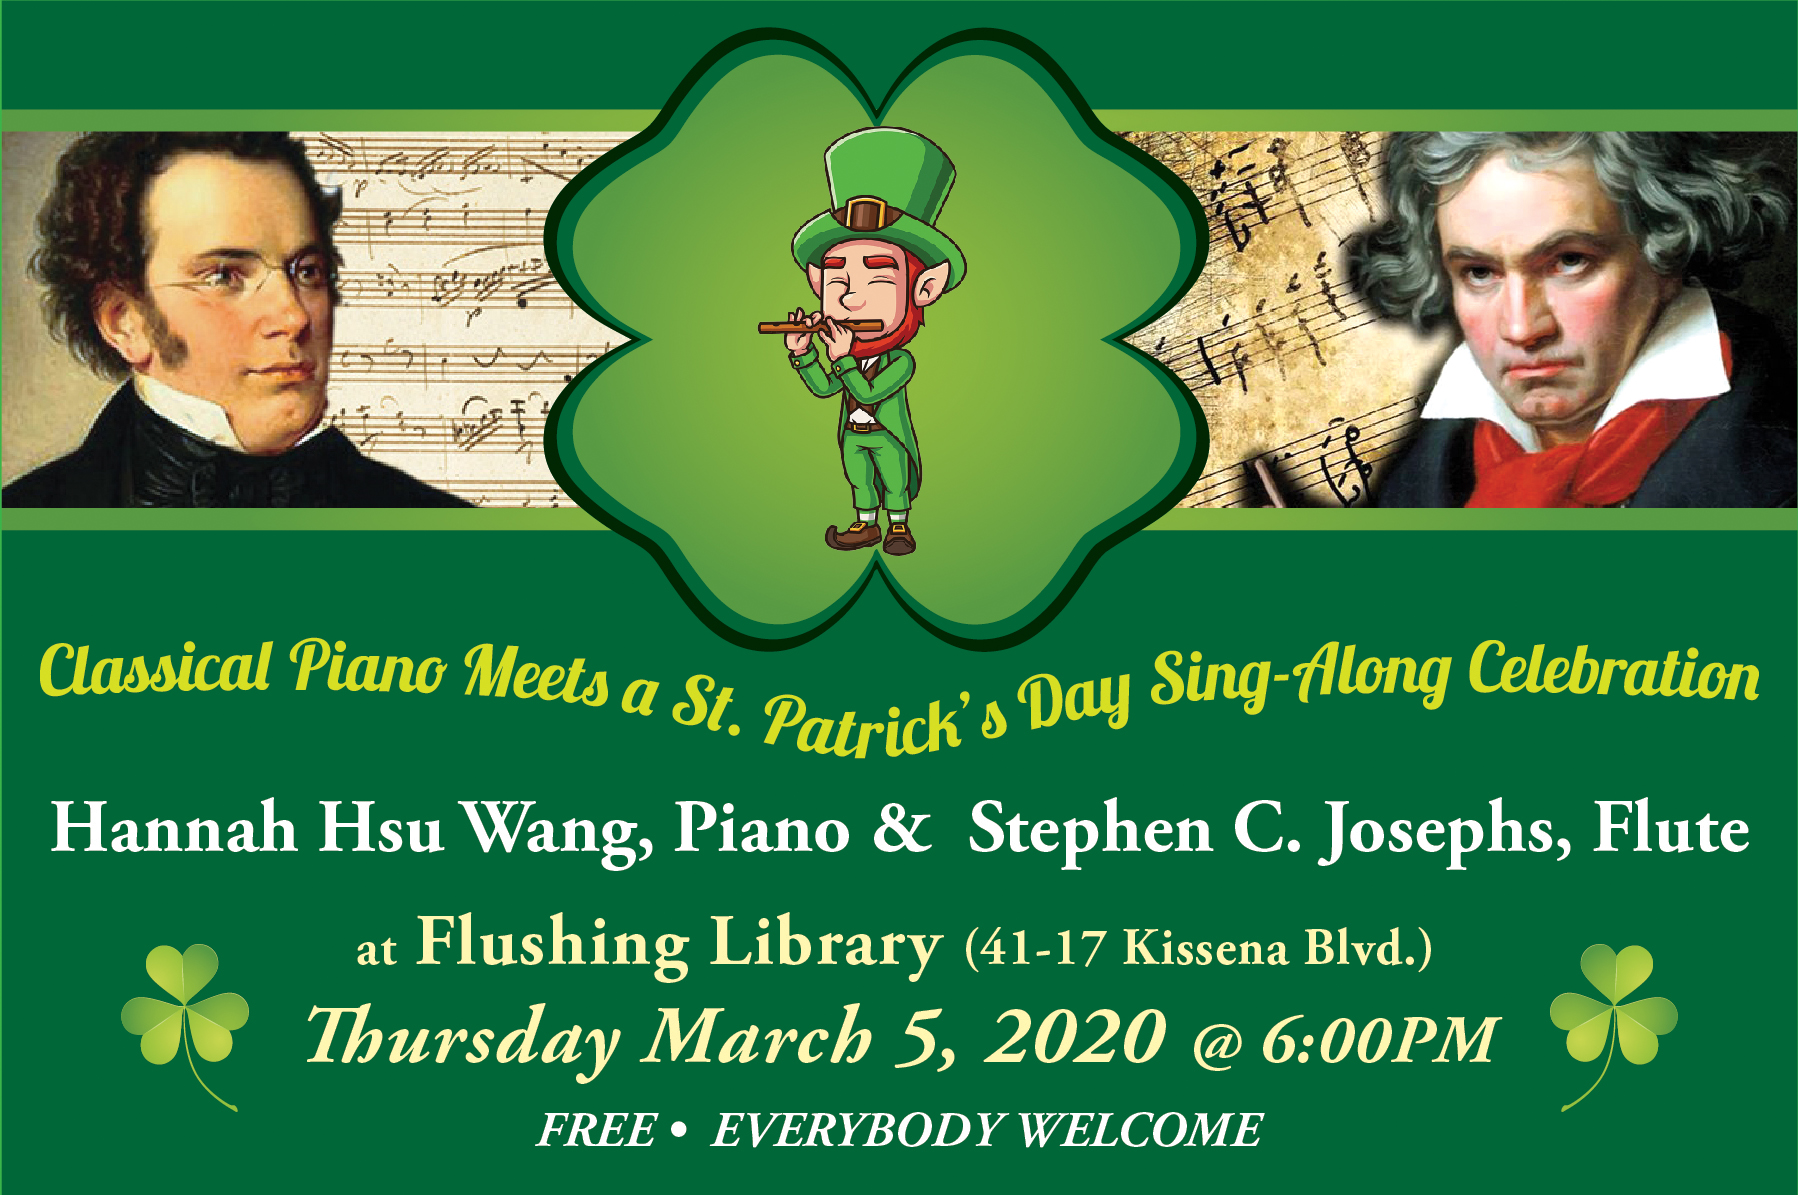 171. Classical Piano Meets a St.Patrick's Day Sing Along Celebration/03/05/2020